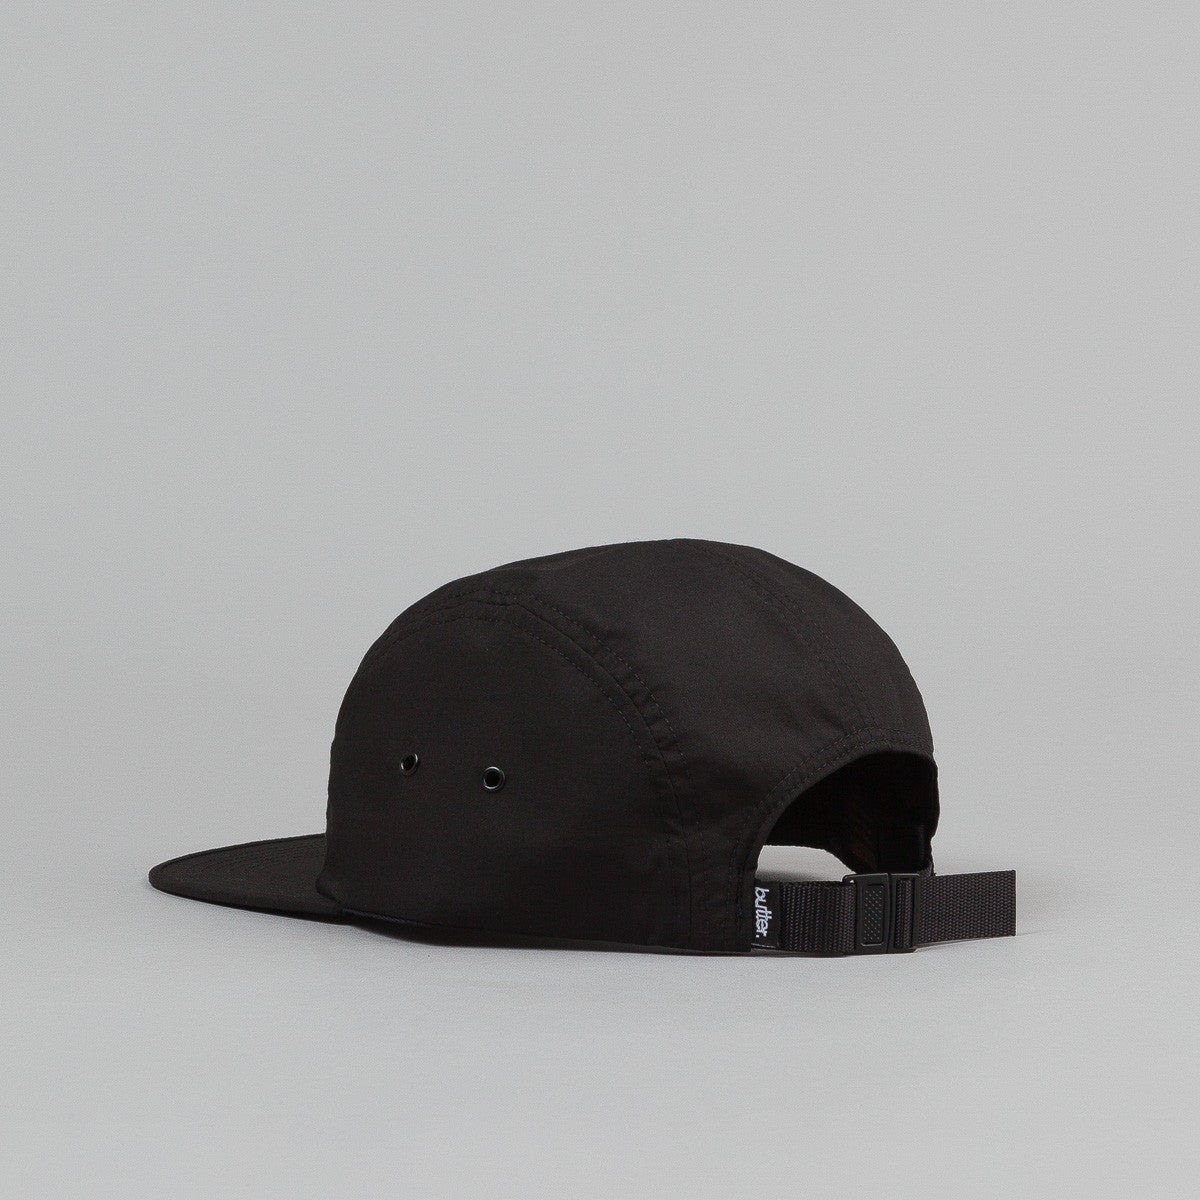 Butter Goods Original Logo 5 Panel Cap - Black